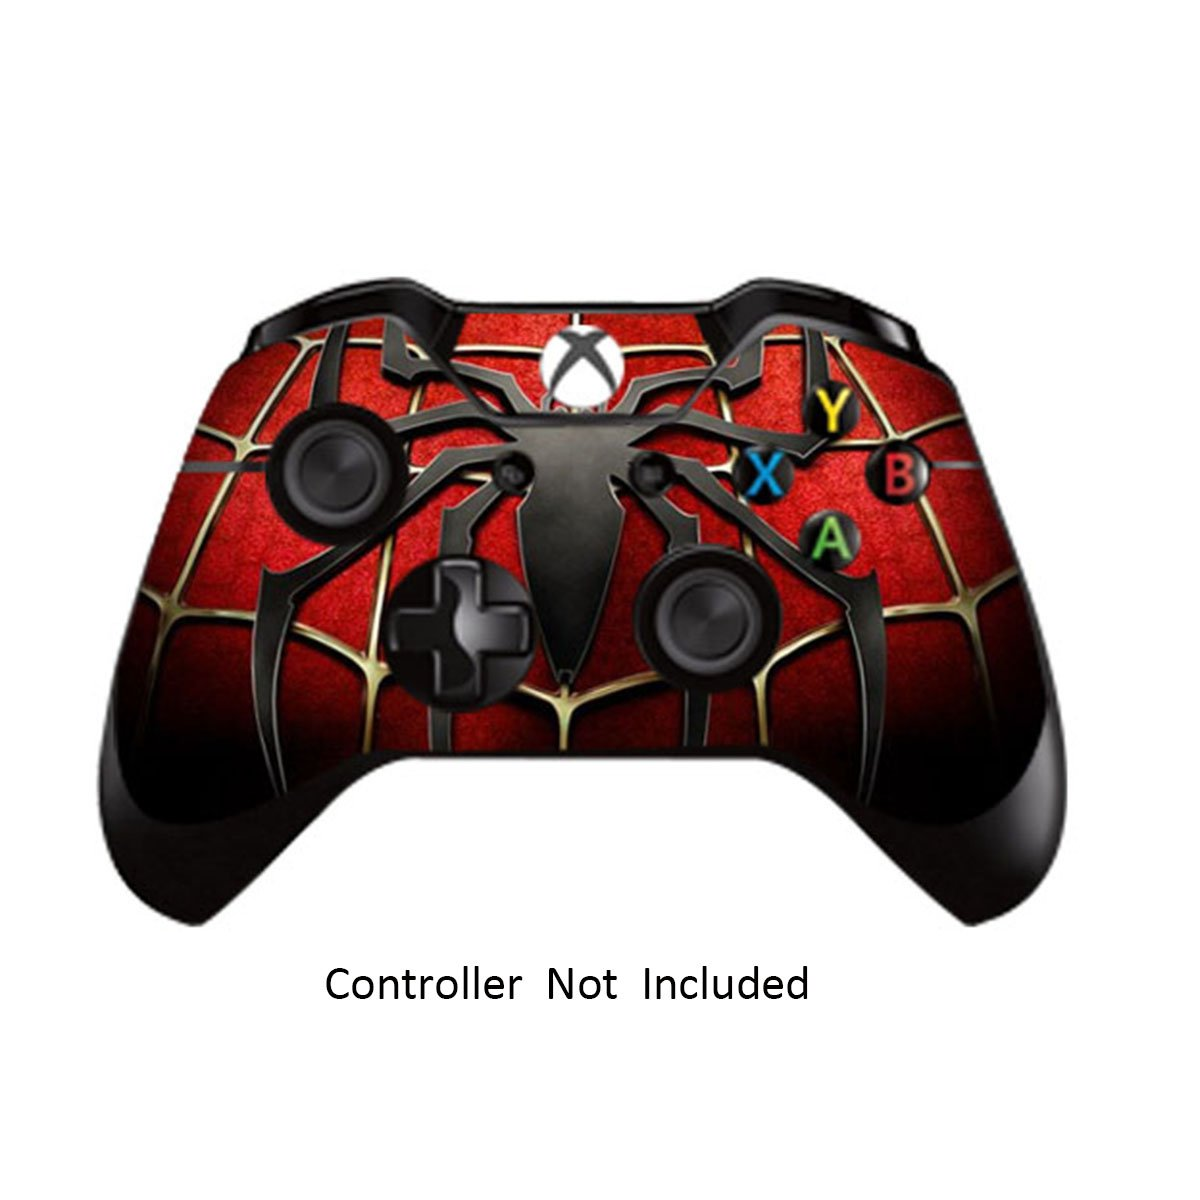 Stickers skin decals for xbox one controller custom xbox 1 remote controller leather texture sticker modded x1 accessories decal widow maker black